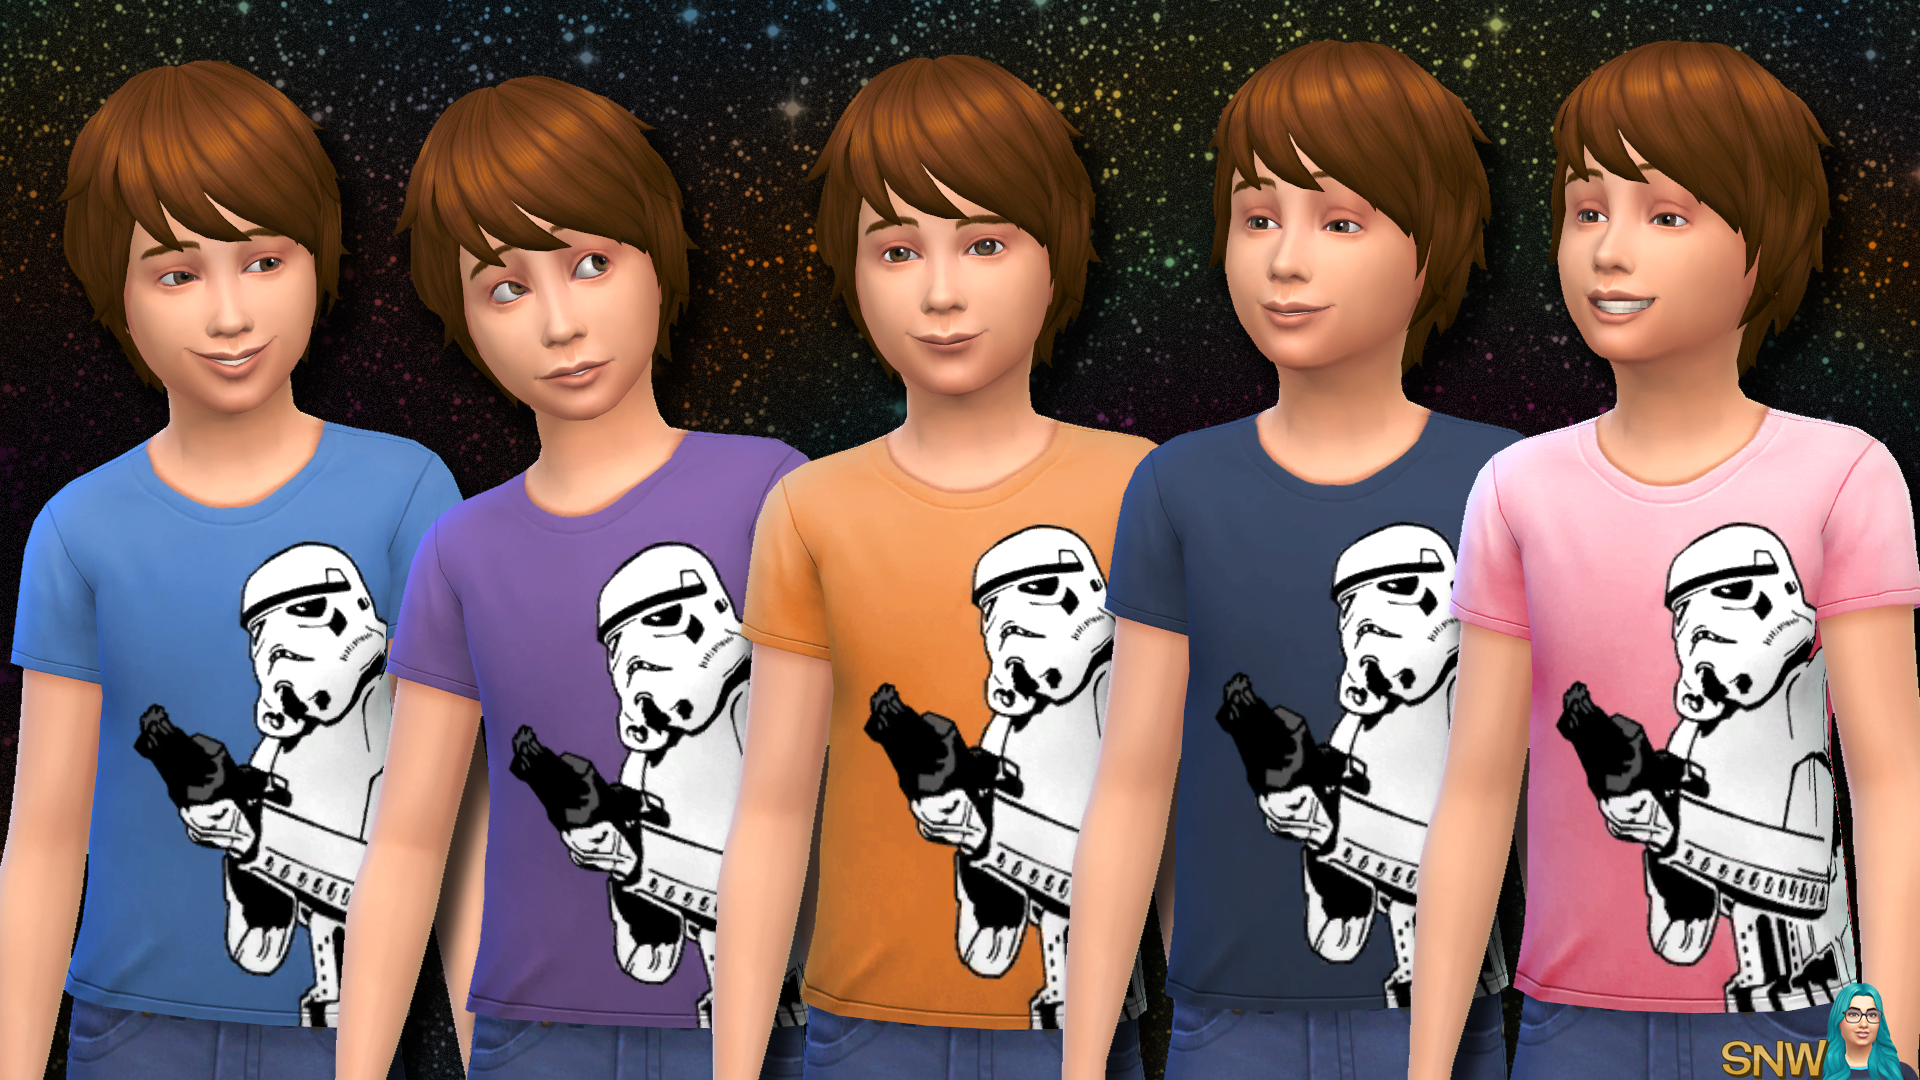 Star Wars Stormtrooper Shirts for Kids